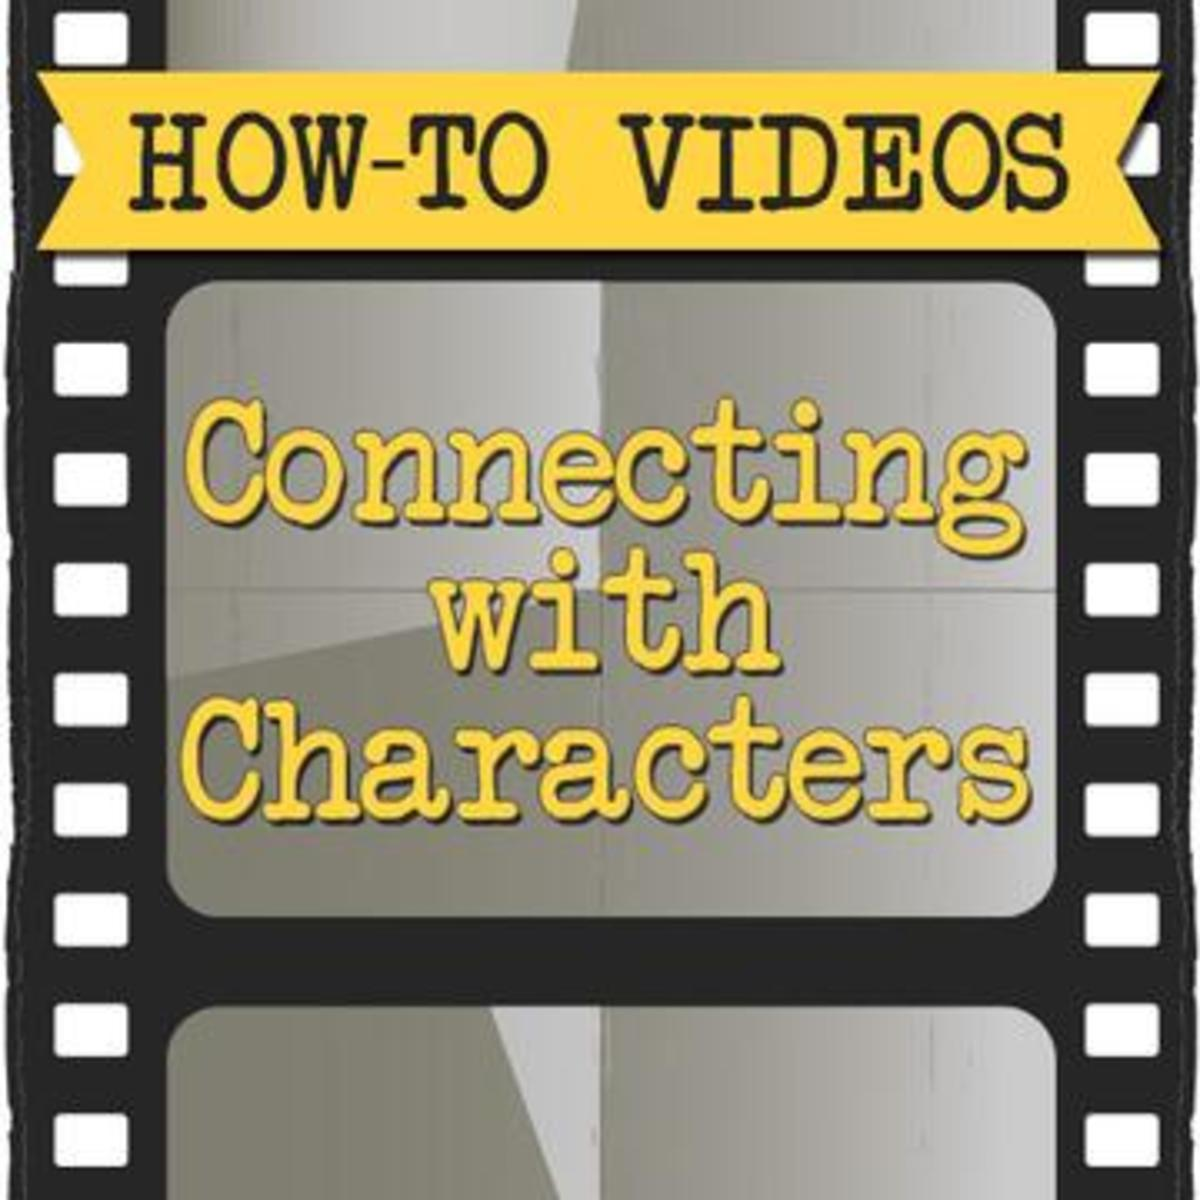 ws_howtovideos-500-connectingcharacters_360x